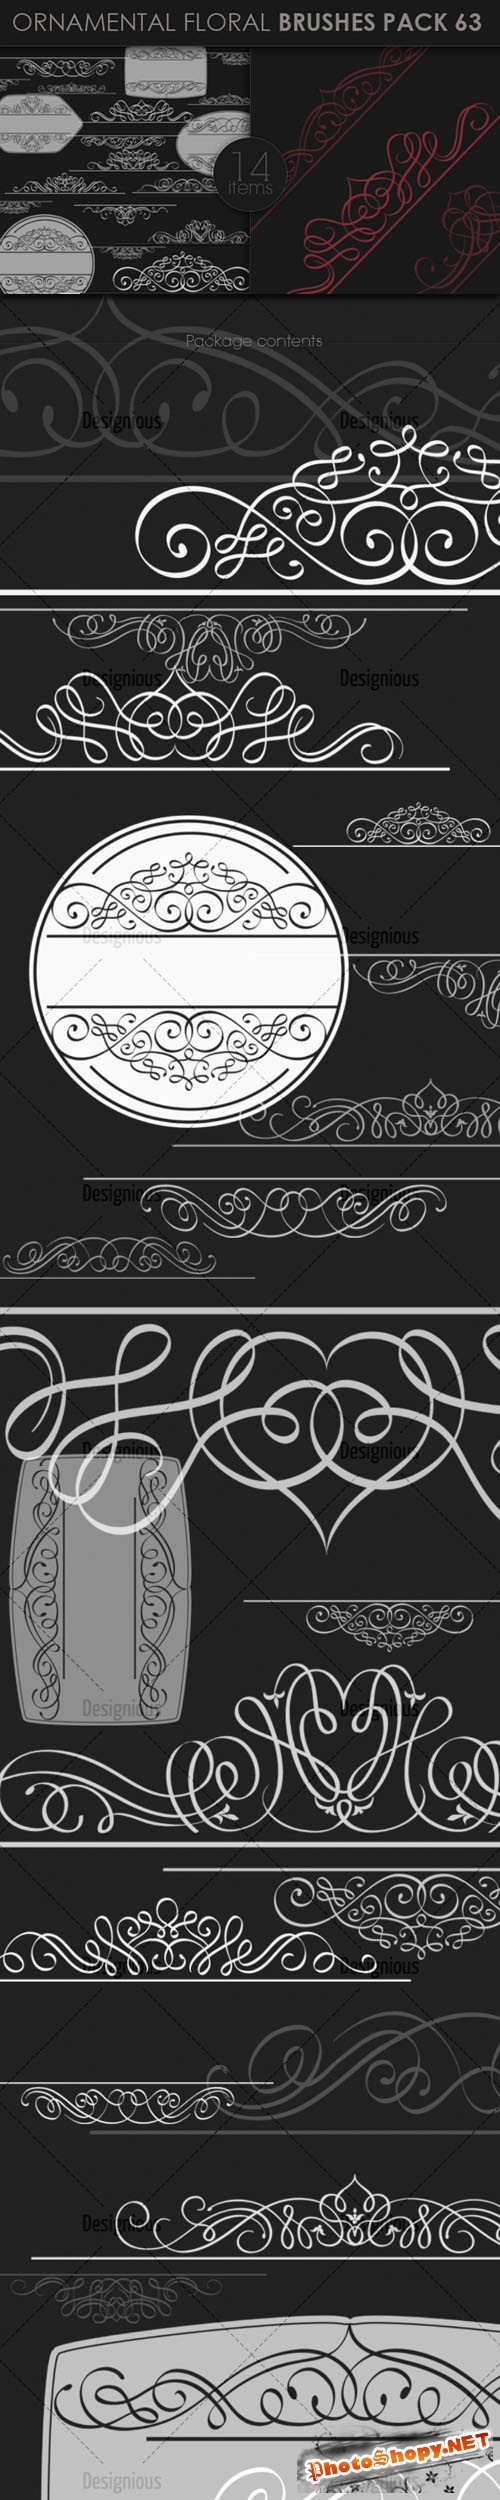 Ornamental Floral Photoshop Brushes Pack 63